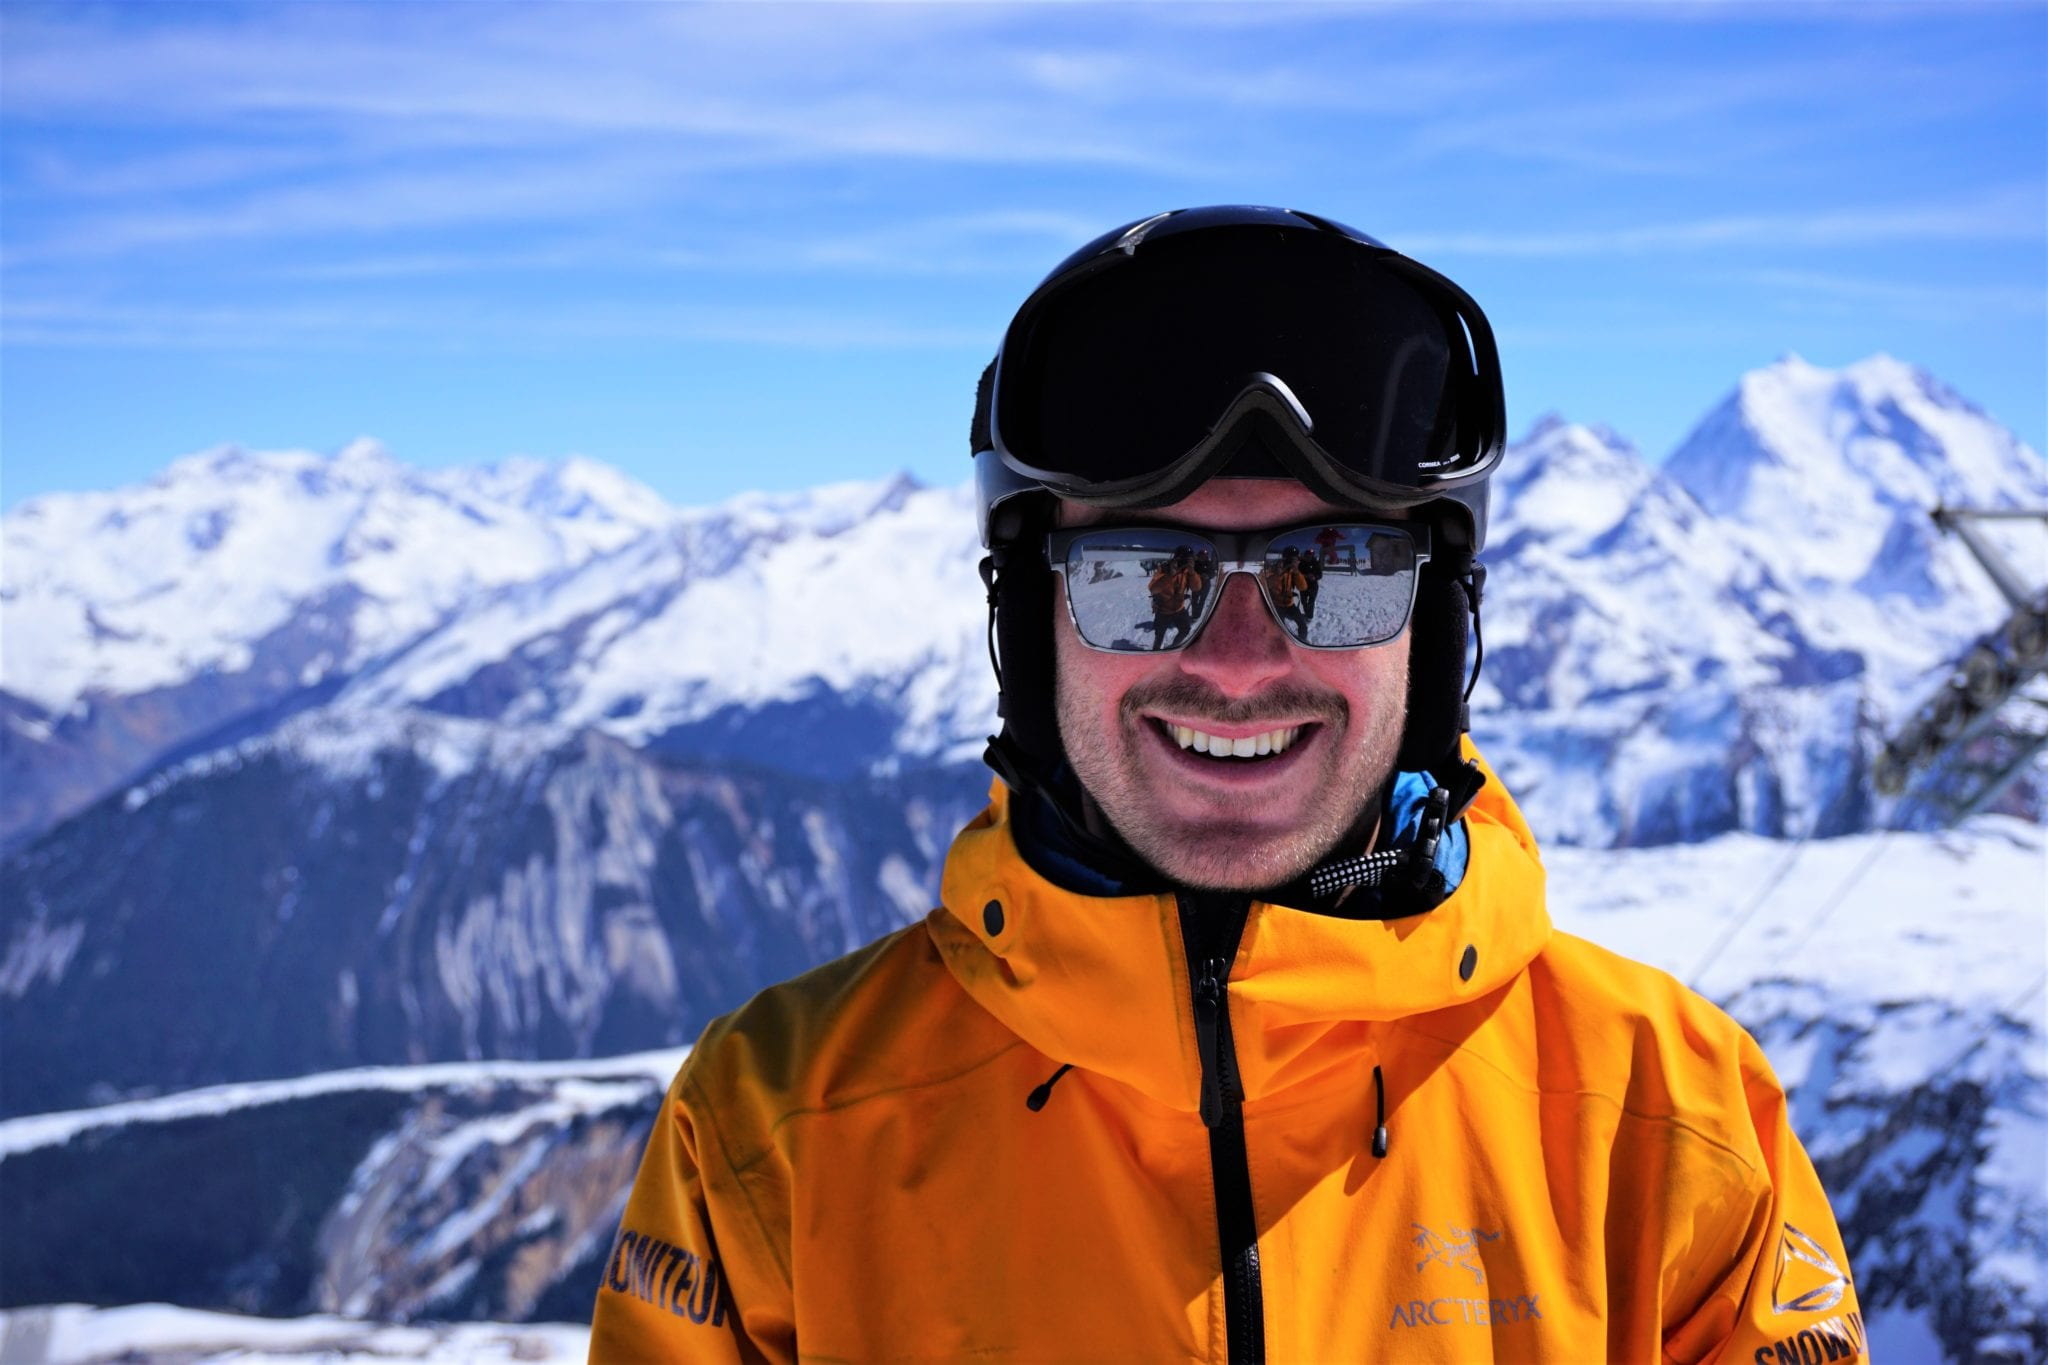 Huw Philips Ski Instructor